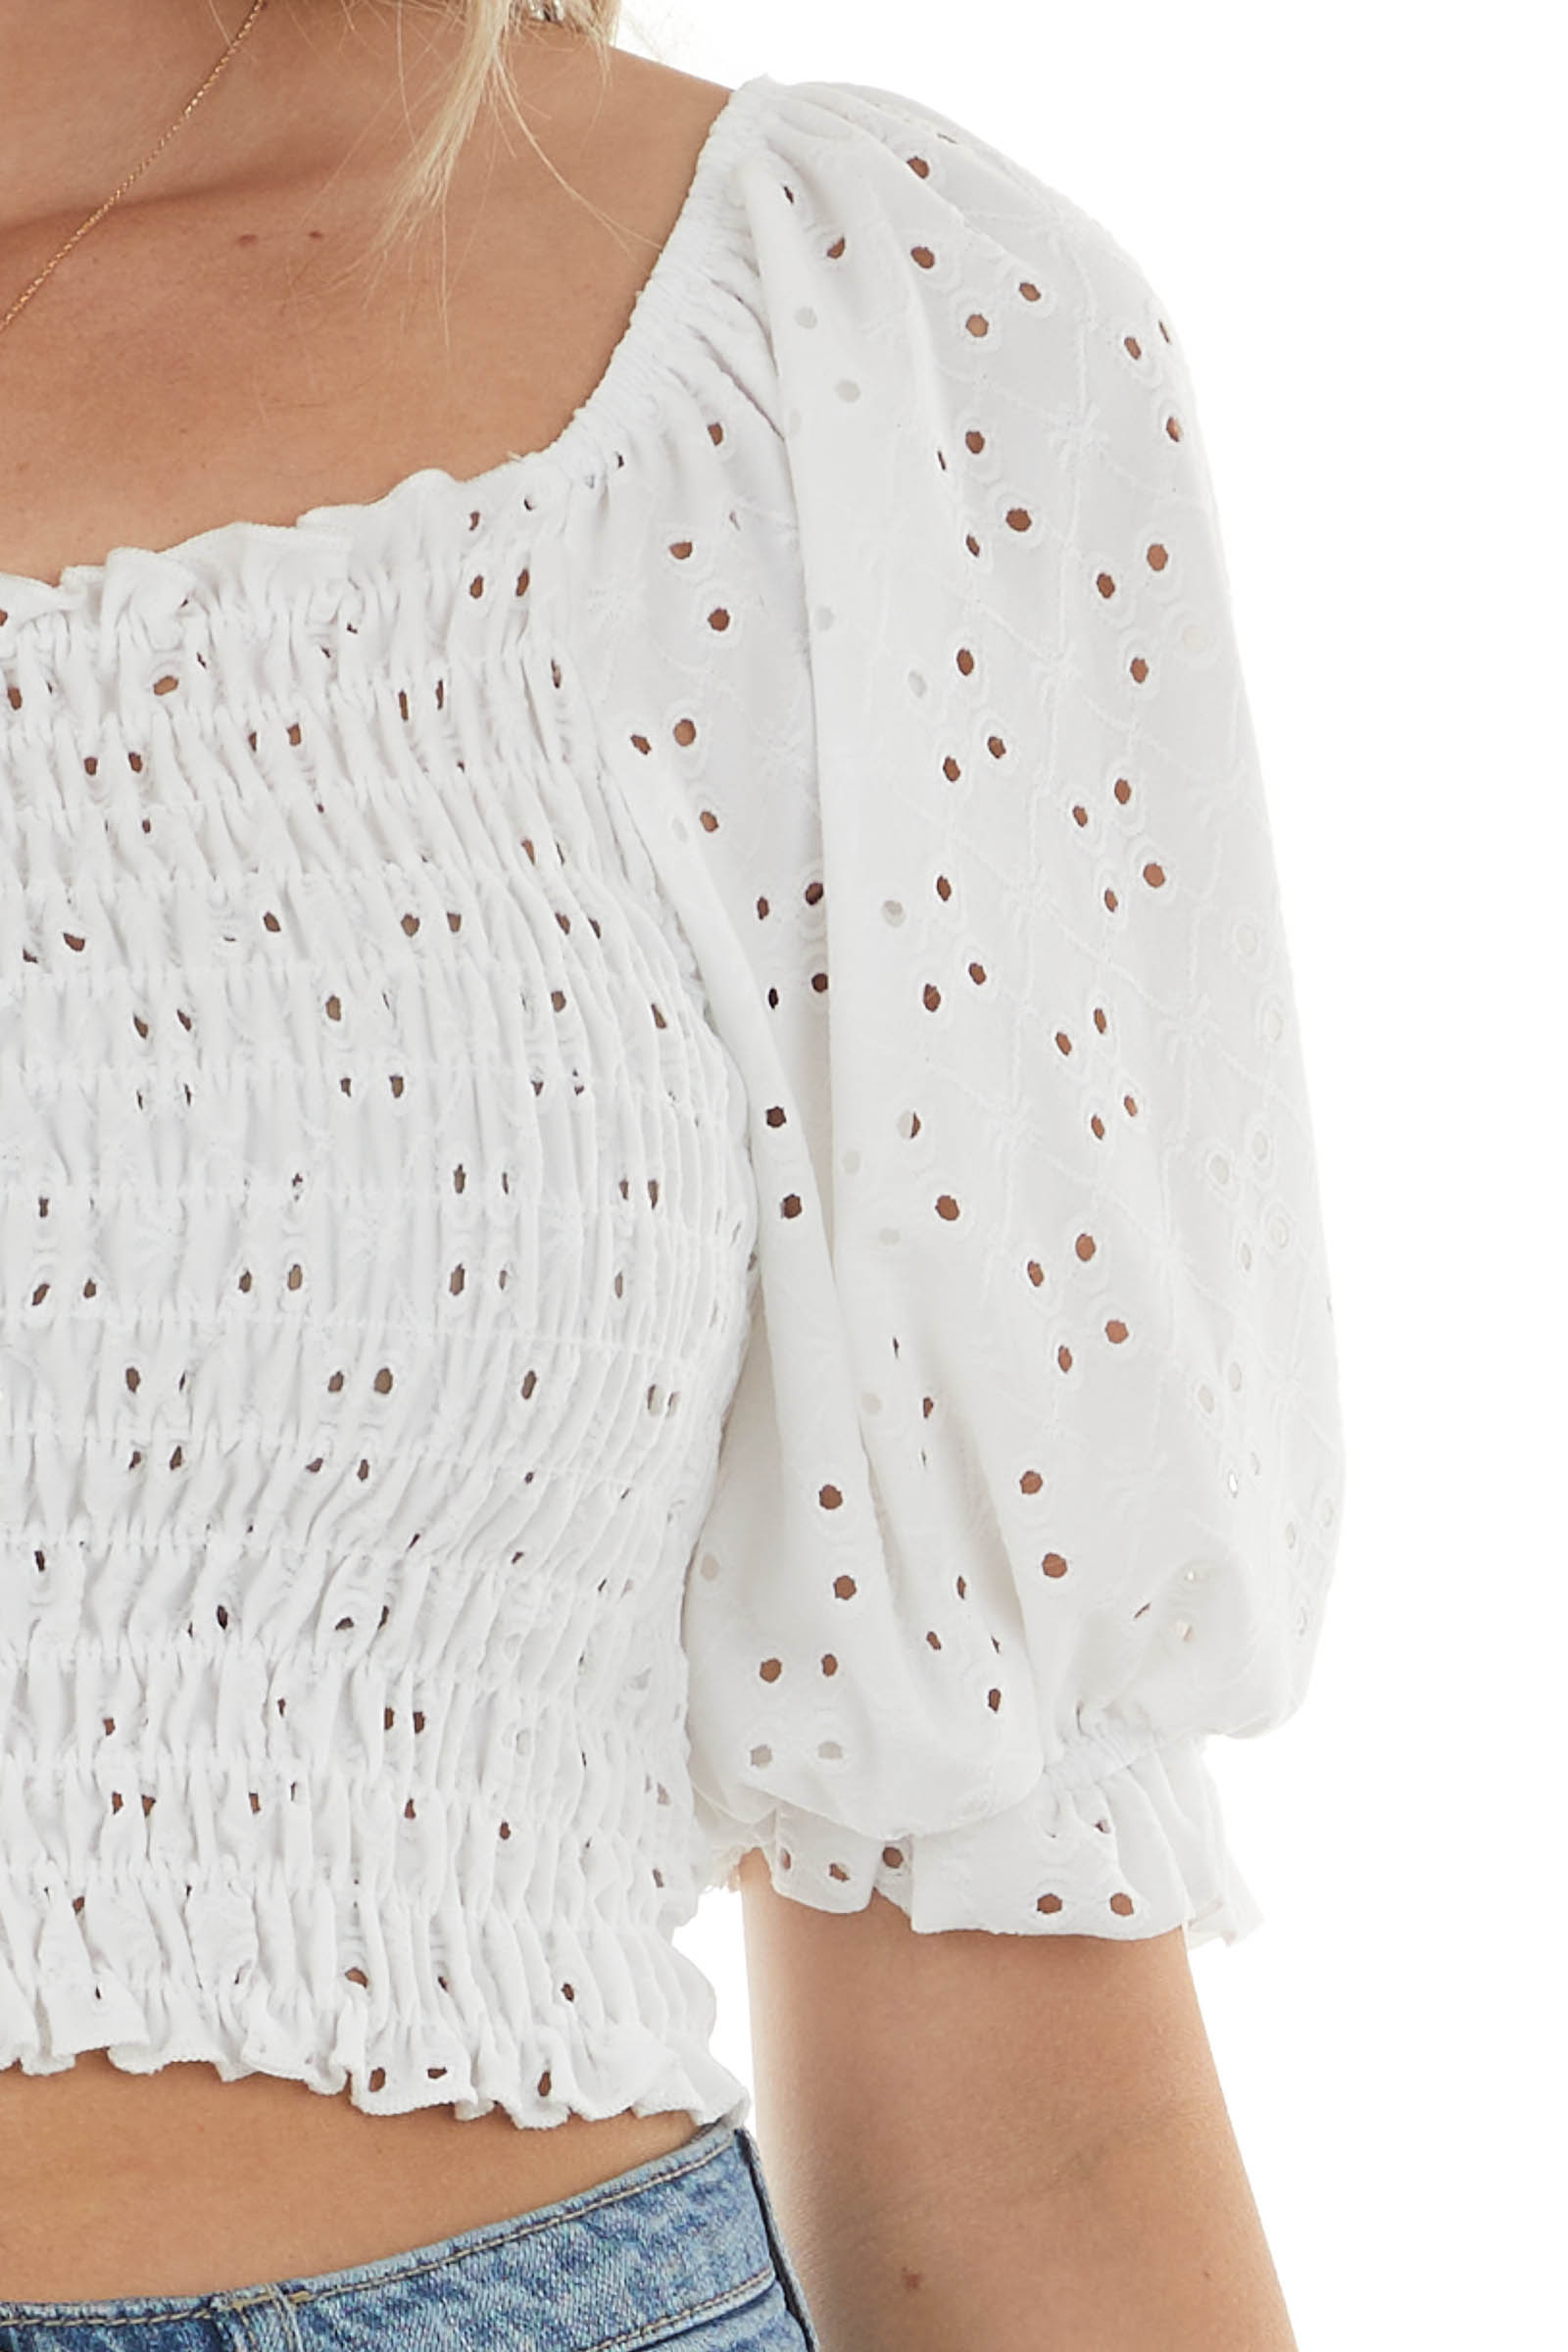 Off White Eyelet Lace Smocked Top